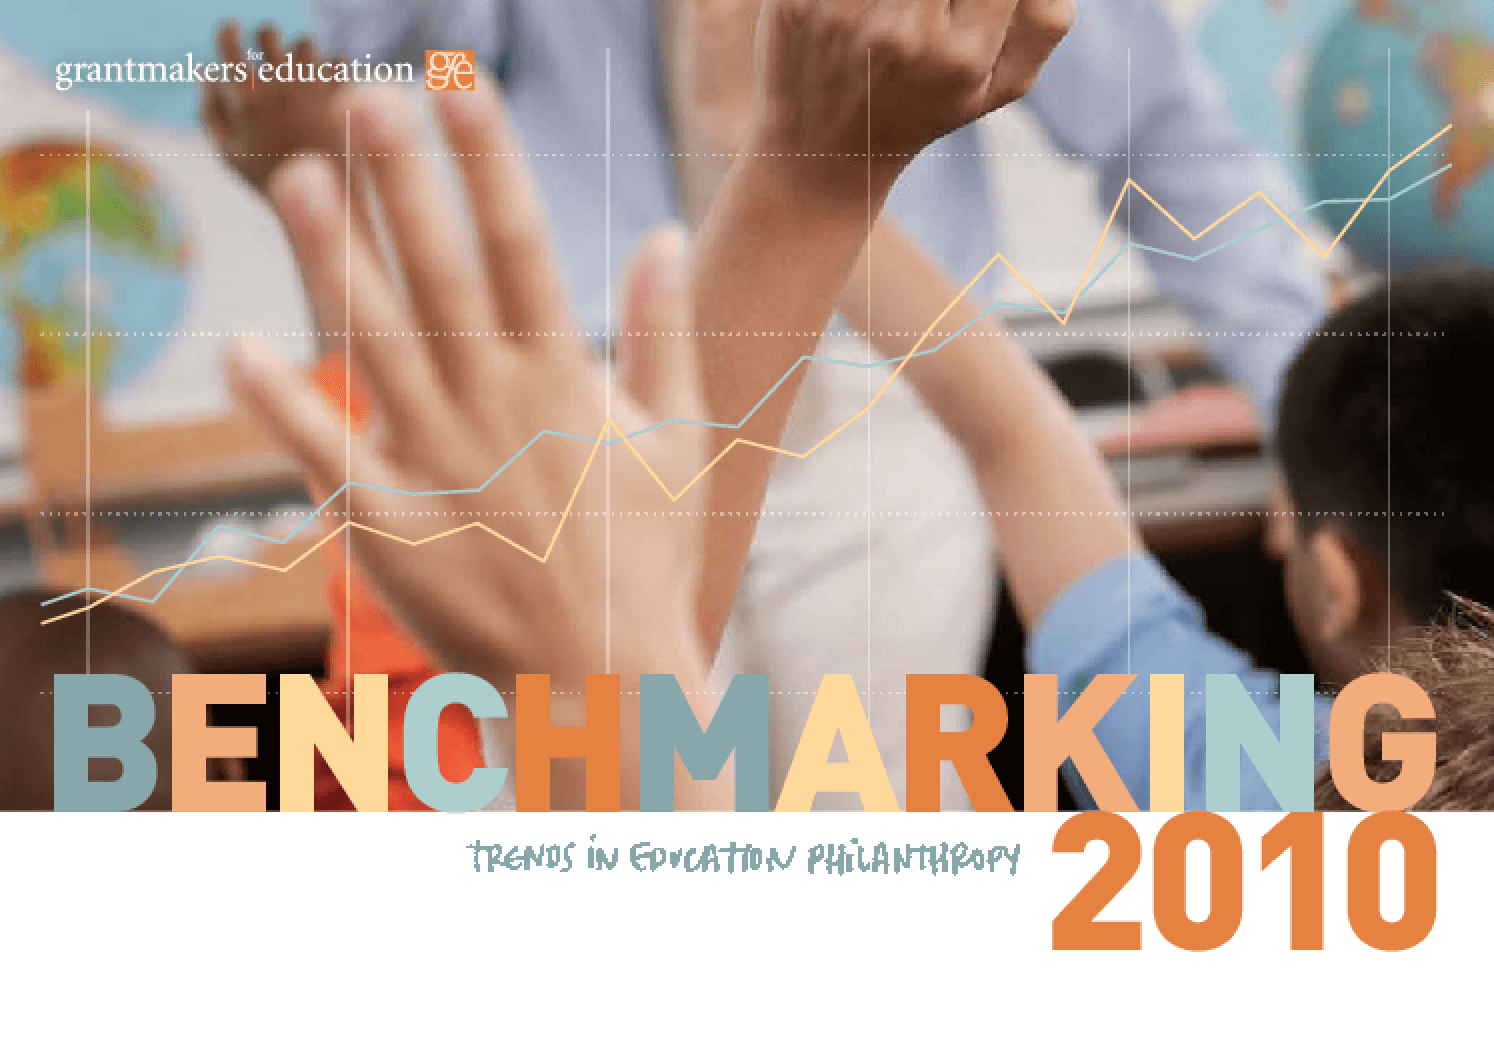 Benchmarking 2010: Trends in Education Philanthropy